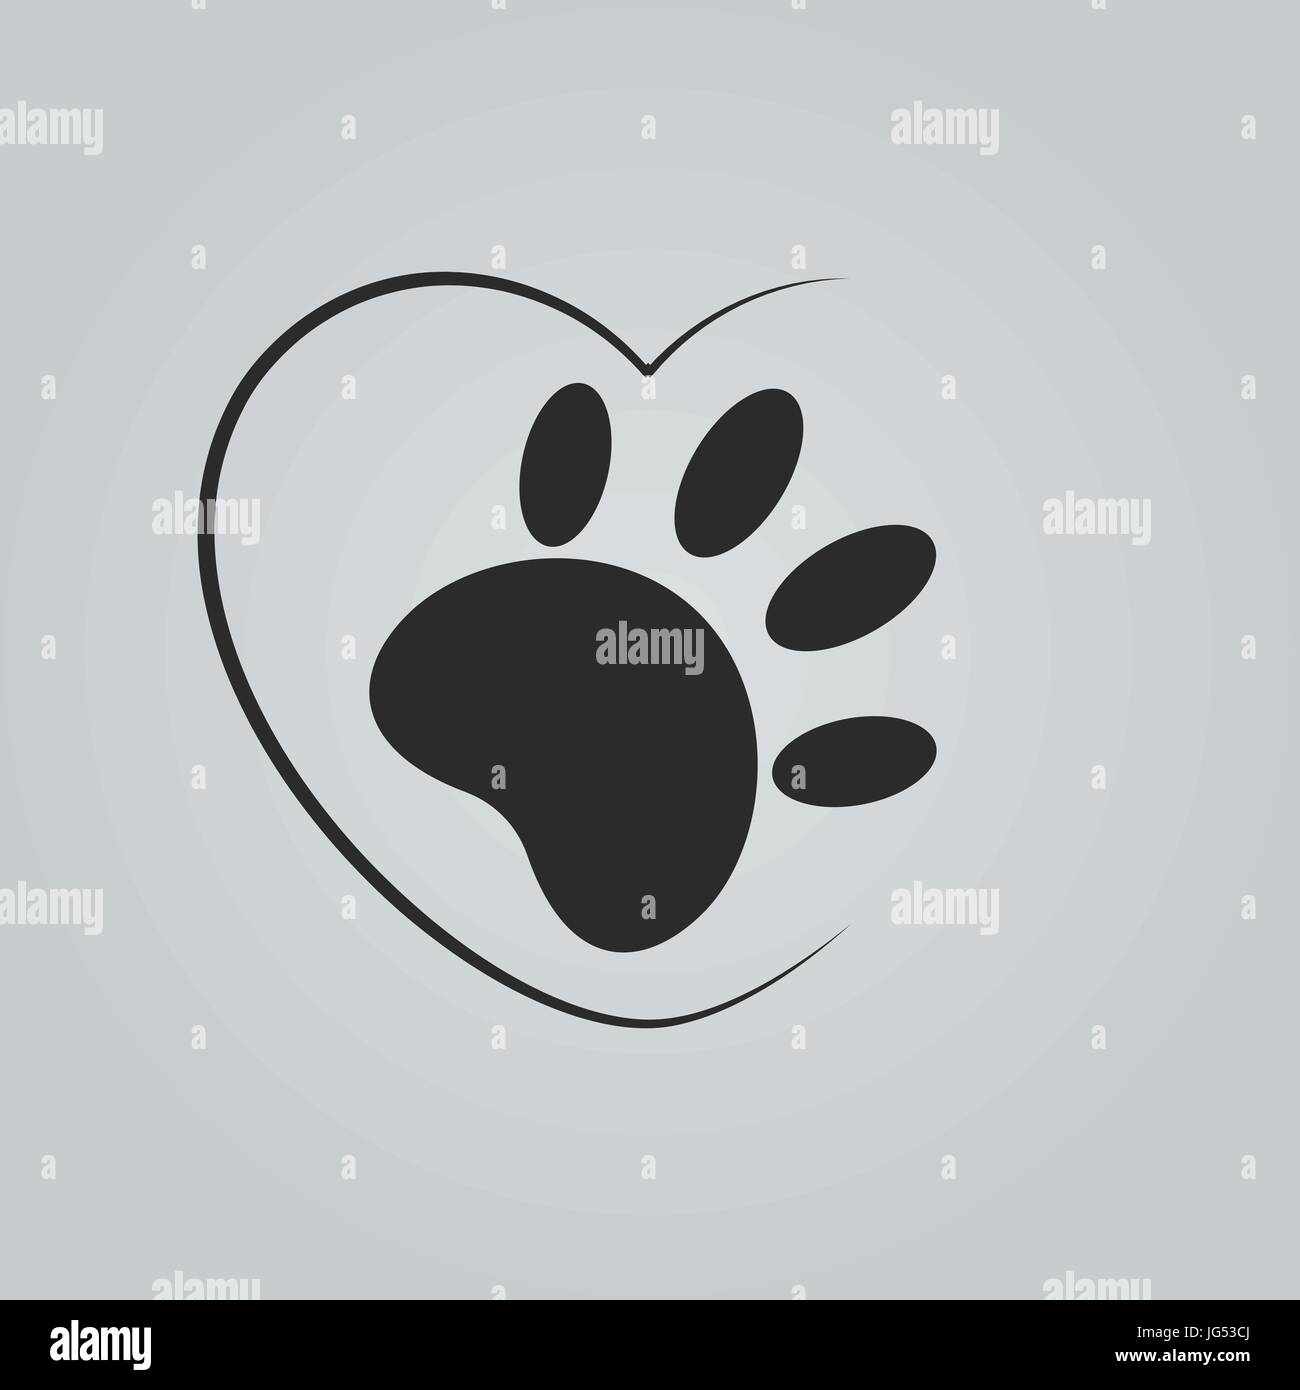 Animal cruelty free logo not tested on animals symbol stock vector animal cruelty free logo not tested on animals symbol biocorpaavc Gallery